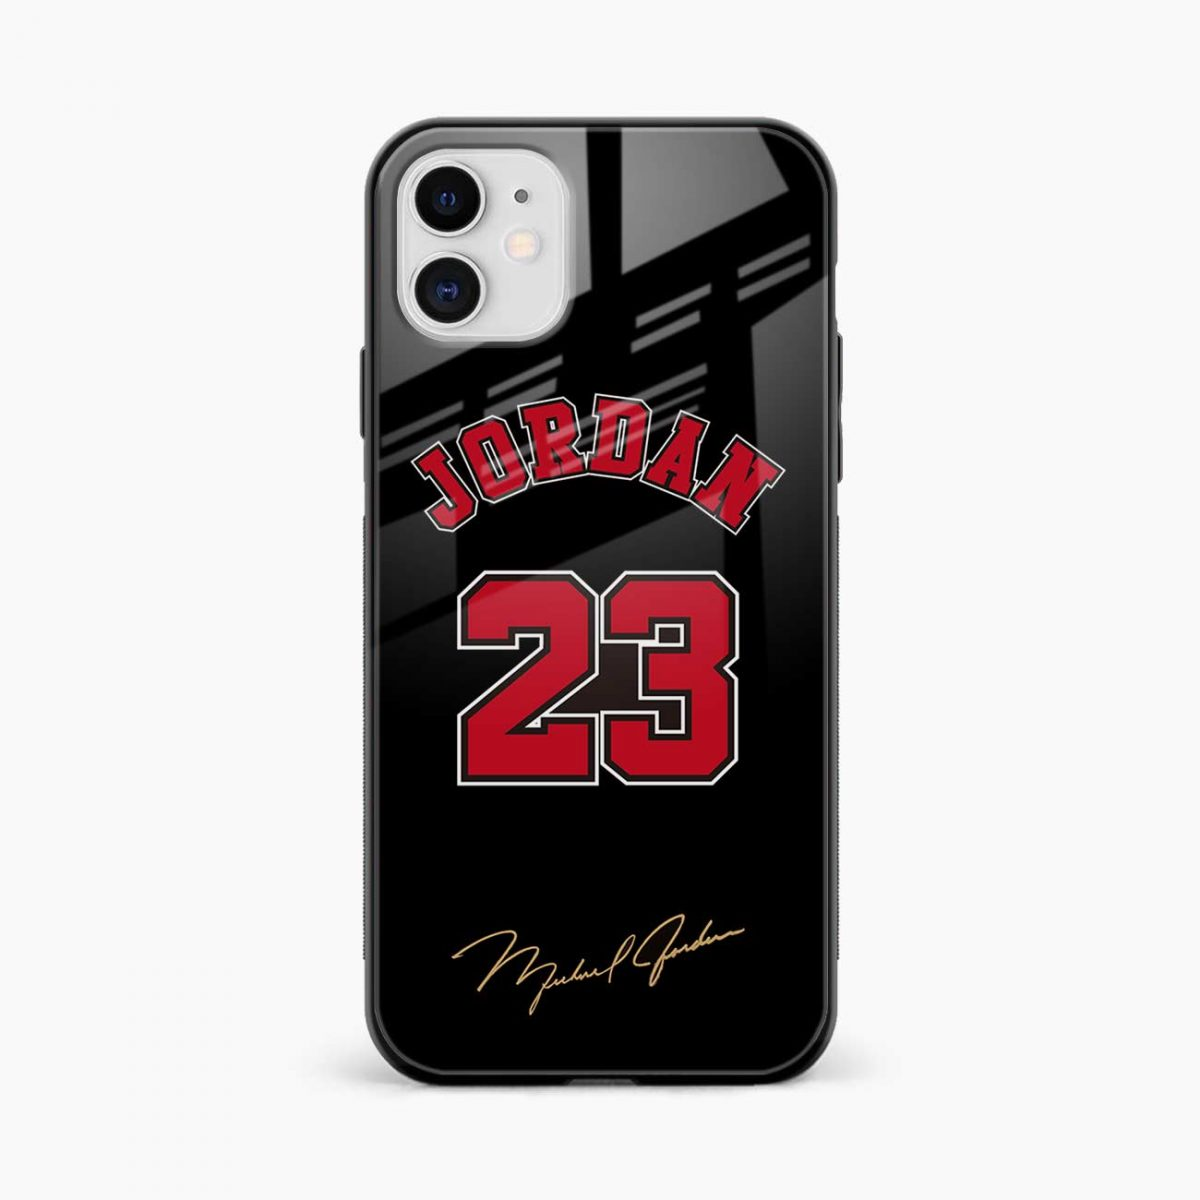 jordan 23 iphone back cover front view